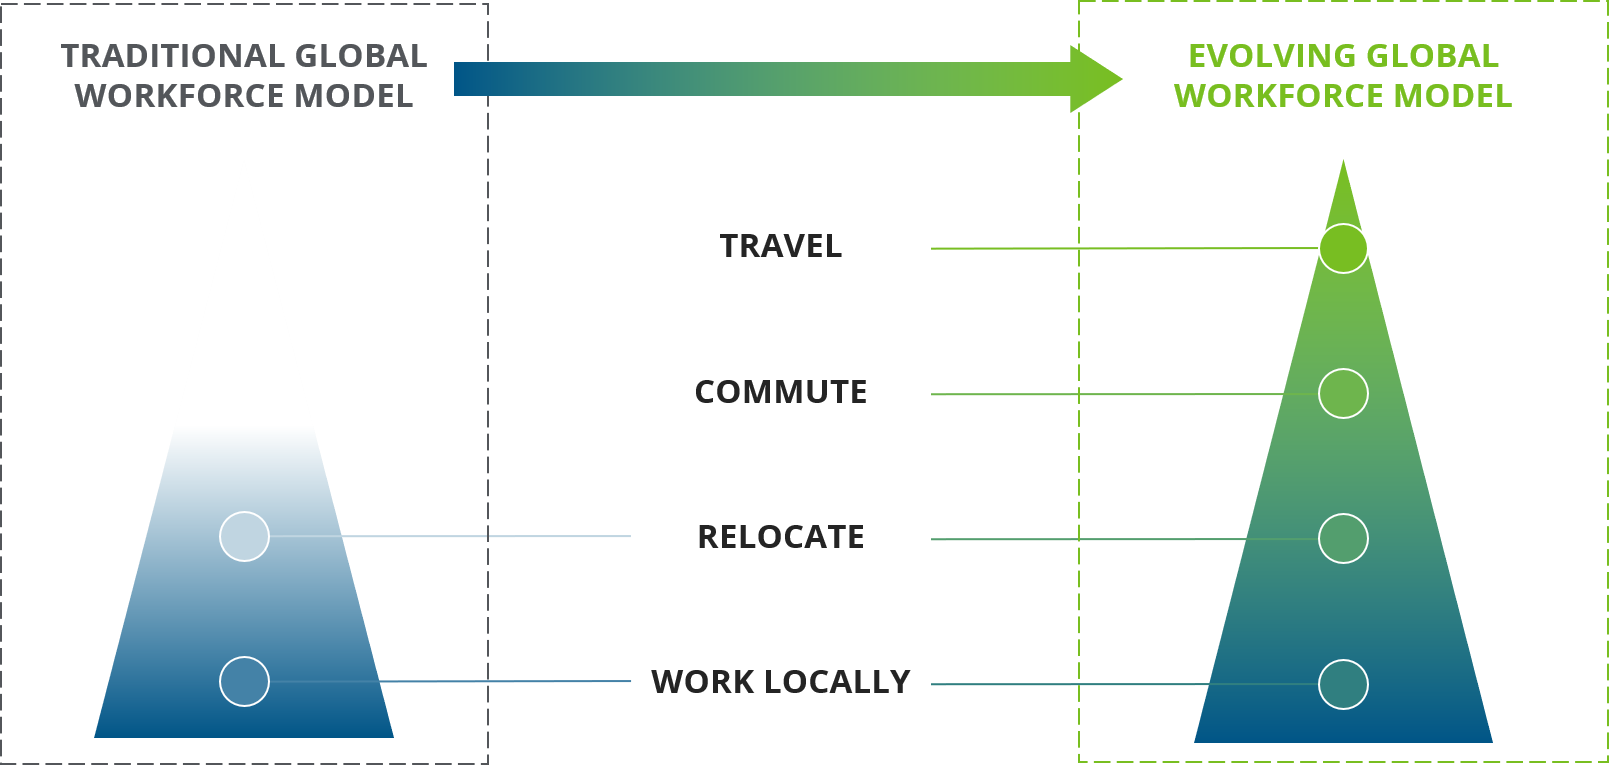 CLIENTS NEED – AND INDEPENDENT PROFESSIONALS WANT – GEOGRAPHIC FLEXIBILITY